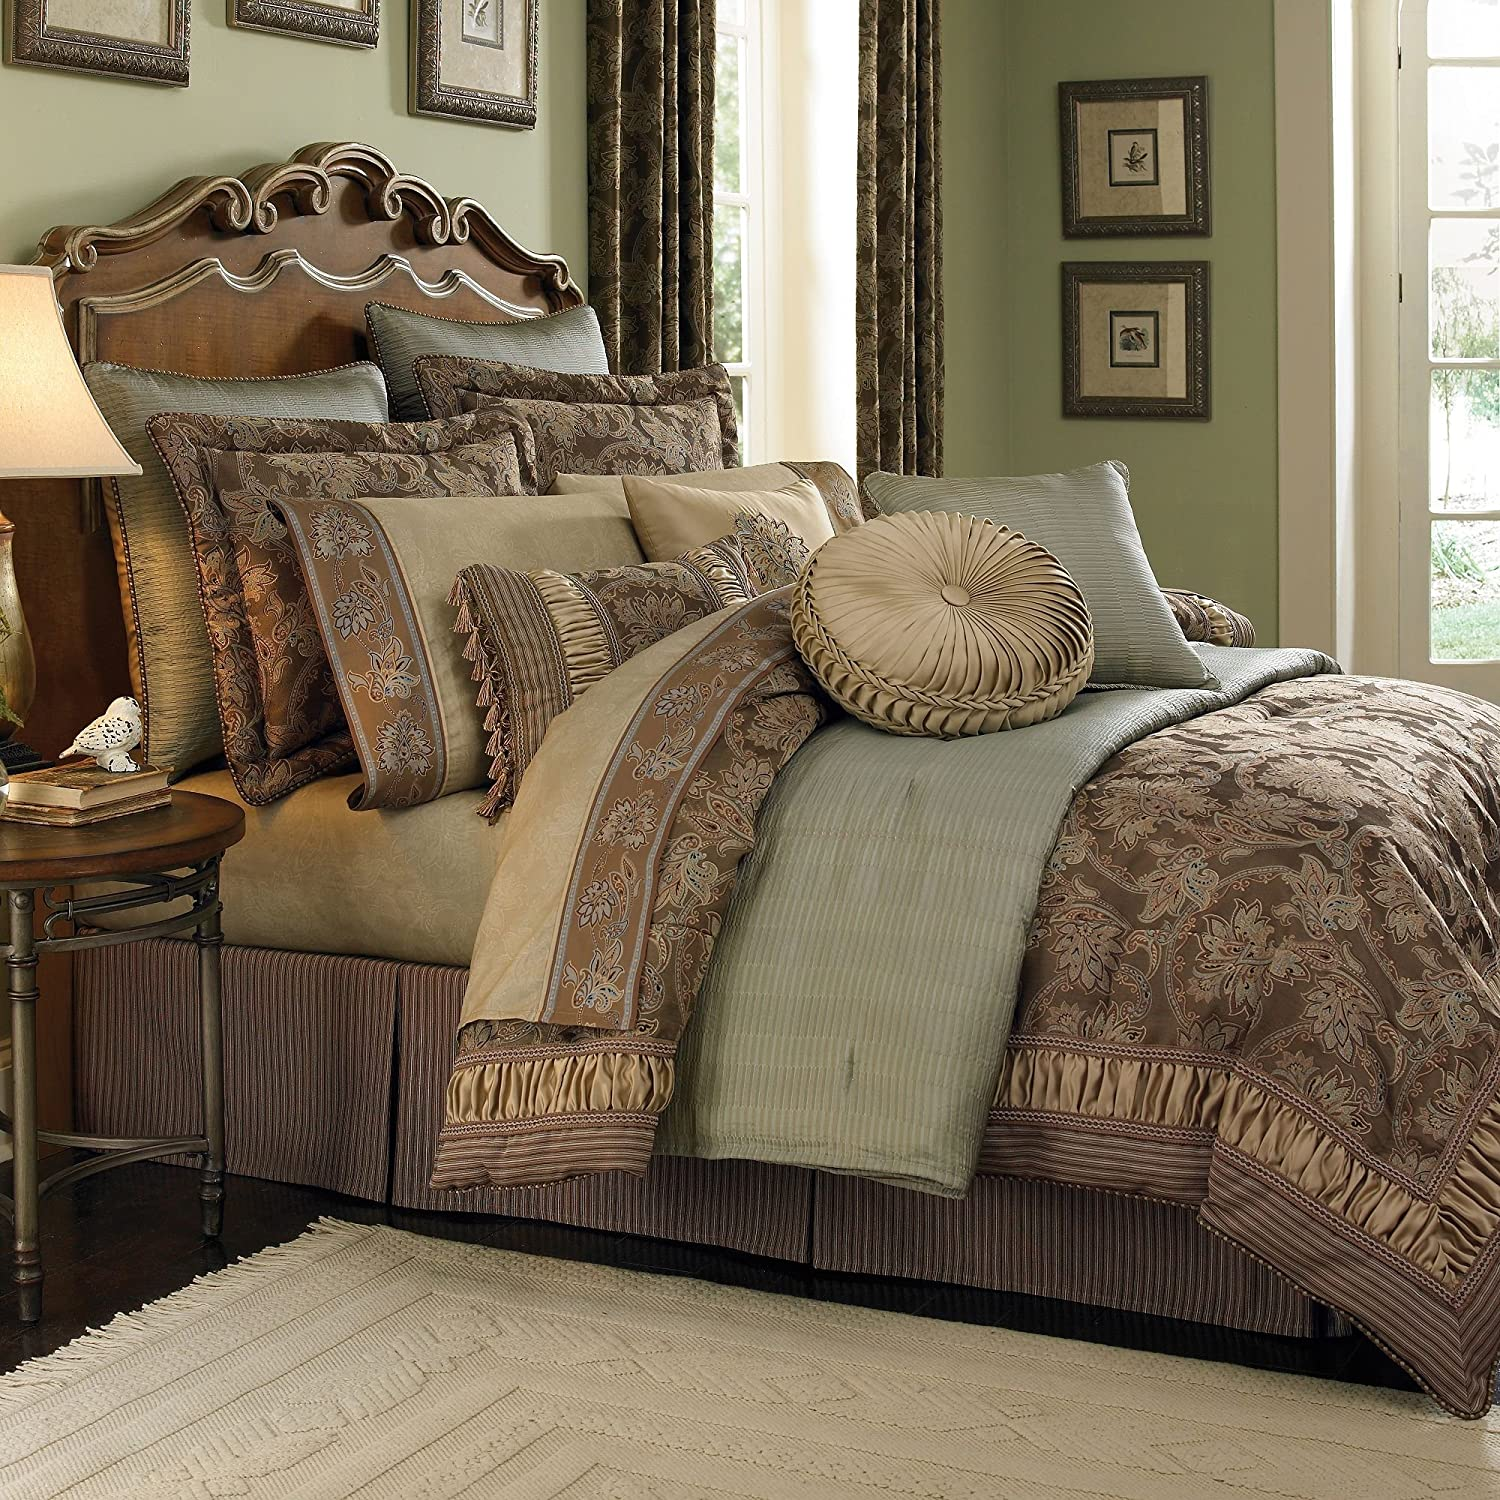 penneypointers home cover chenille shot screen lattice at peri duvet am what comforter collection a is jcpenney